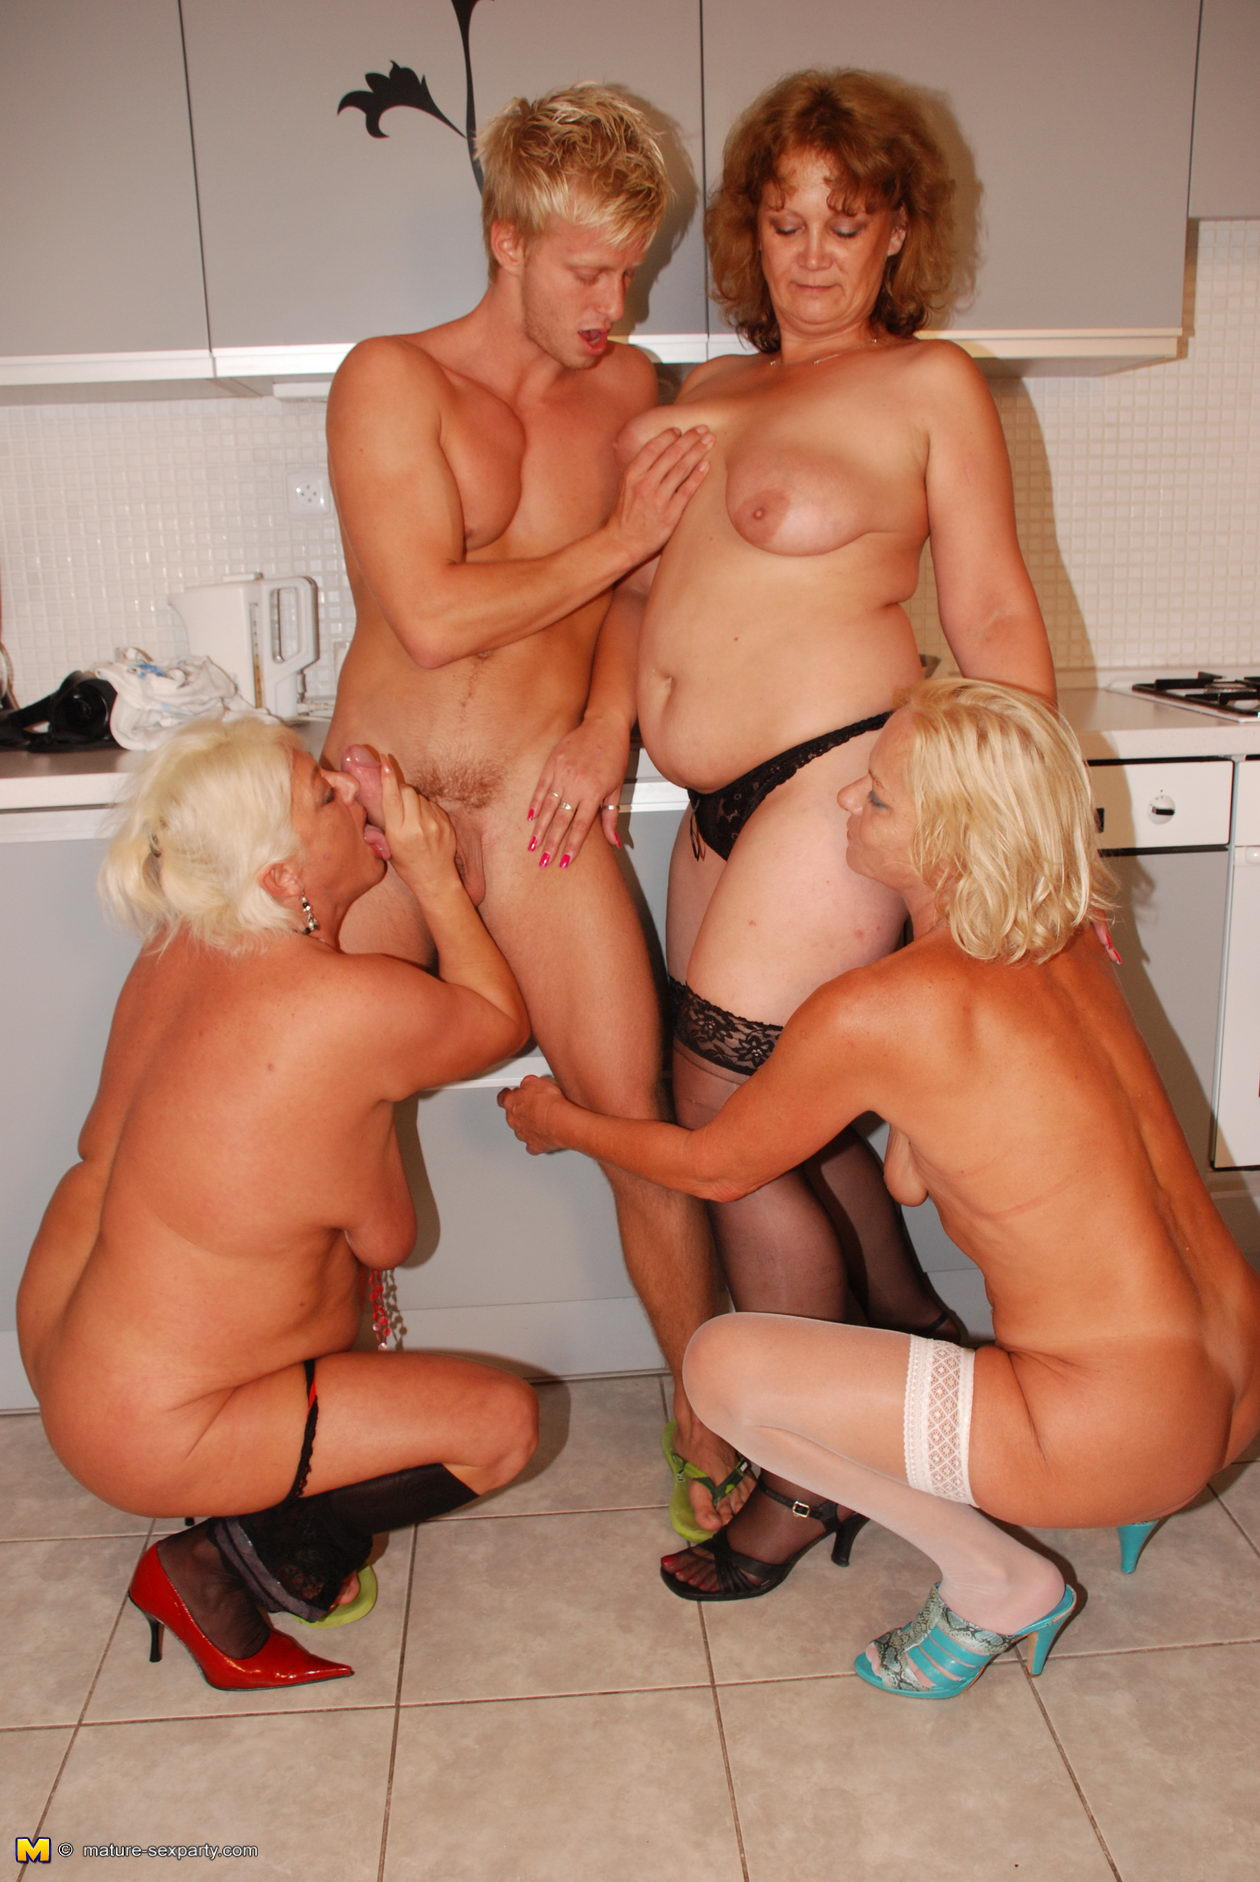 Agree with Group mature nude grannies think, that